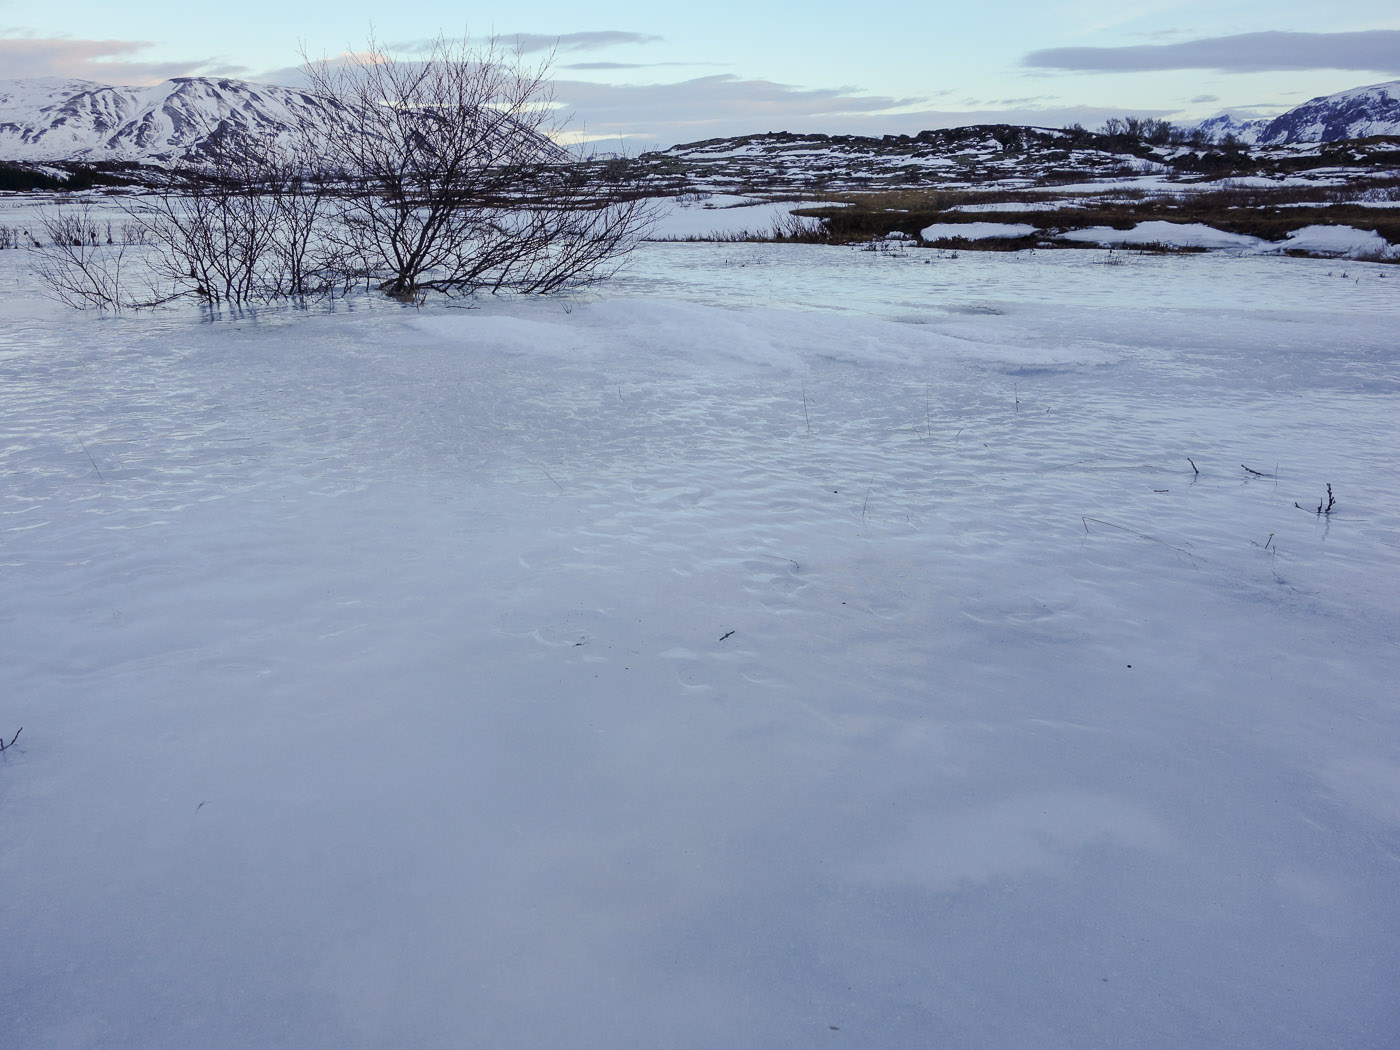 Þingvellir. Short trip. - Þingvellir, frozen ... I. (5 January 2014)